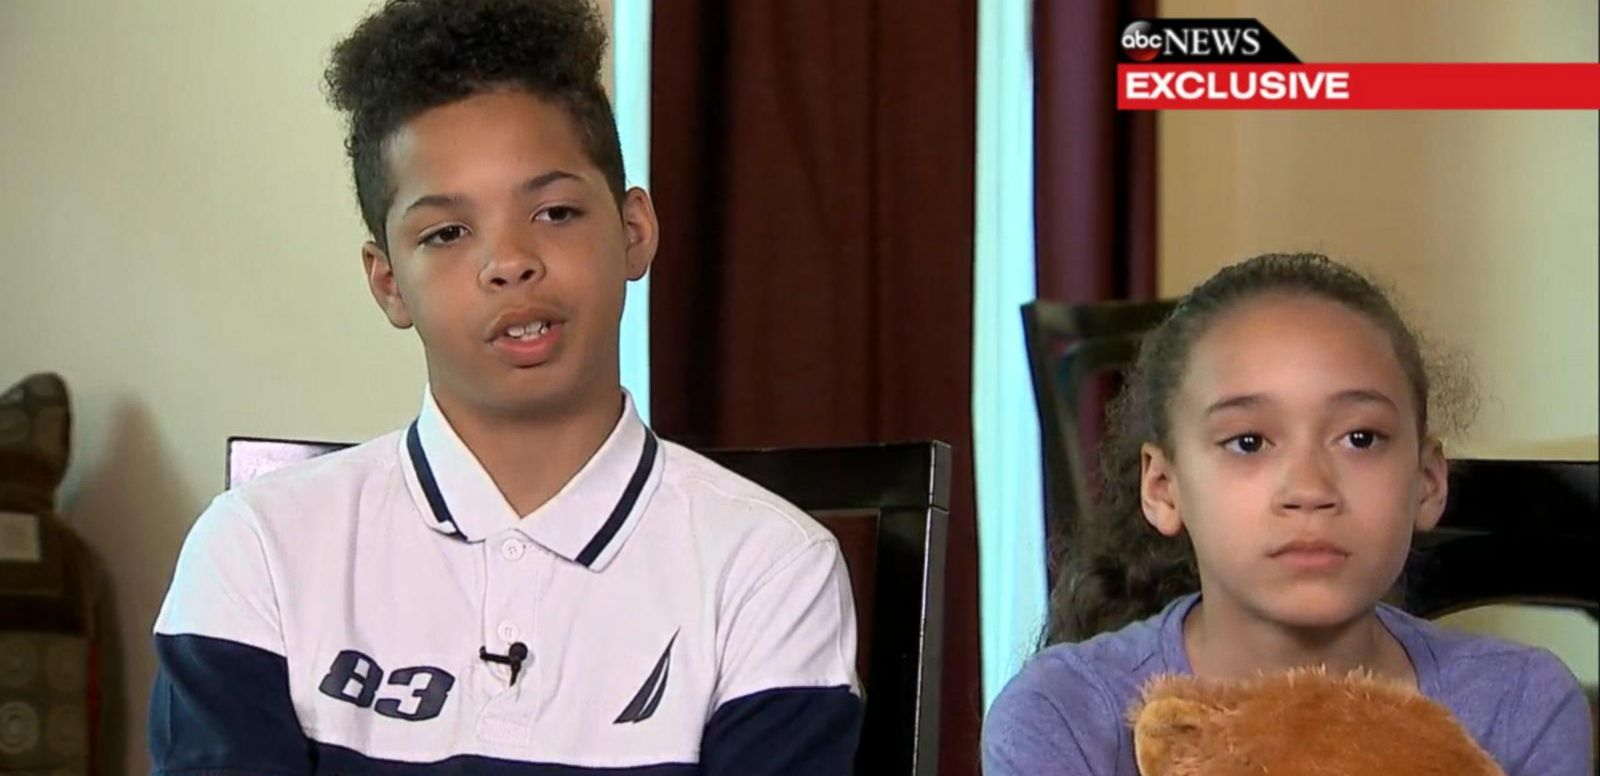 VIDEO: Maryland Teen Describes Ingenuity Used to Save Family From Fire